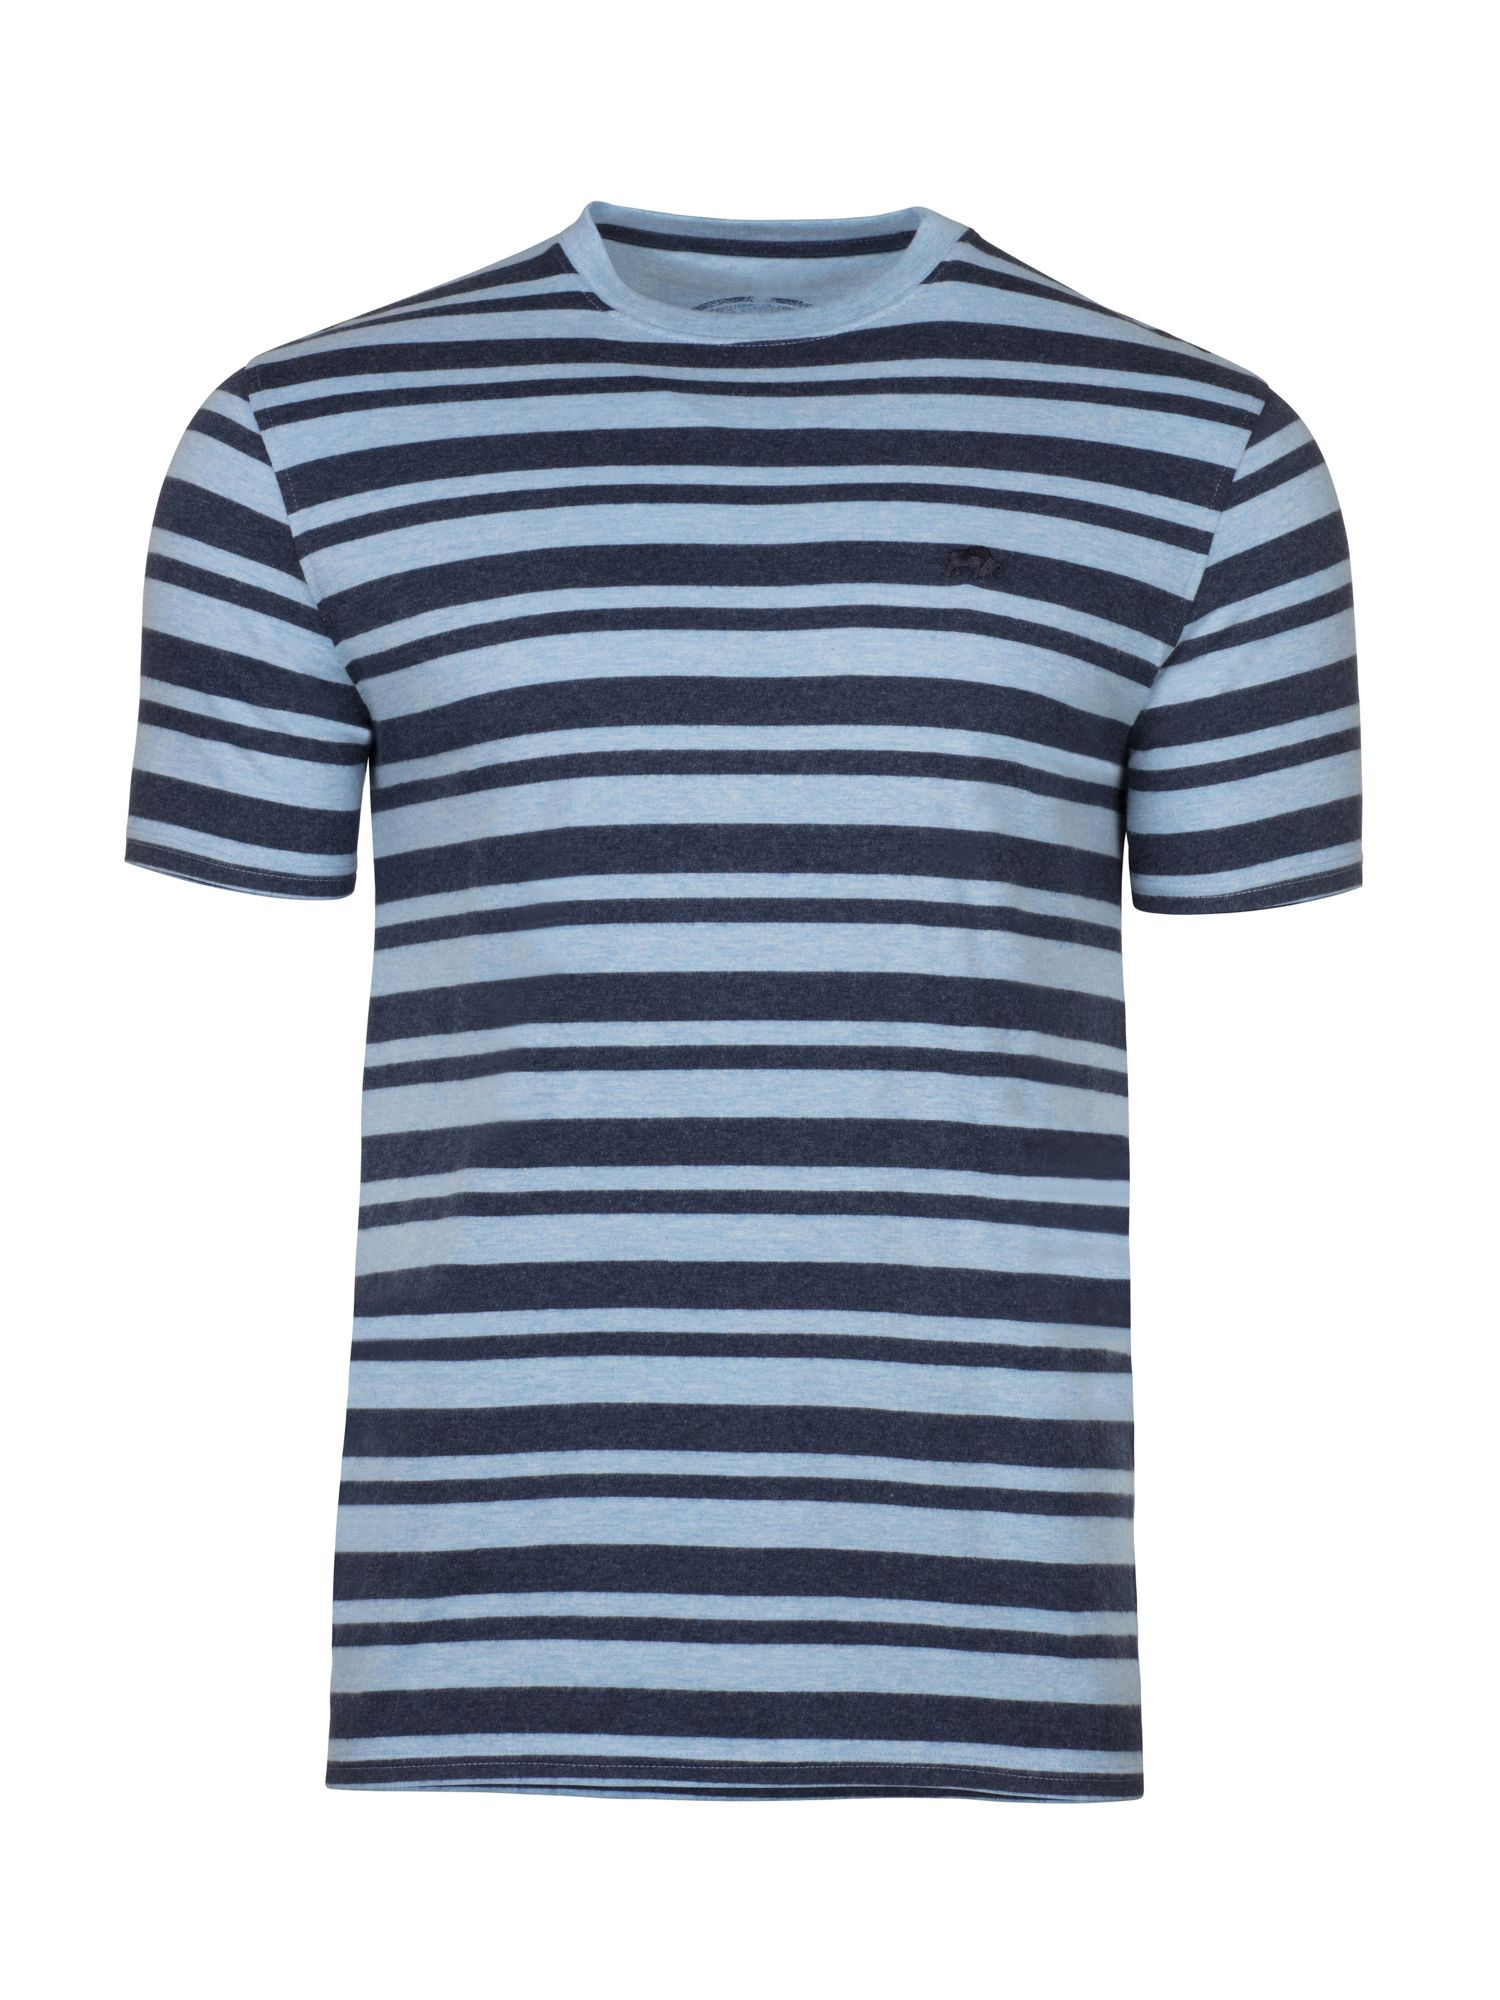 Men's Raging Bull Marl Stripe Tee, Sky Blue